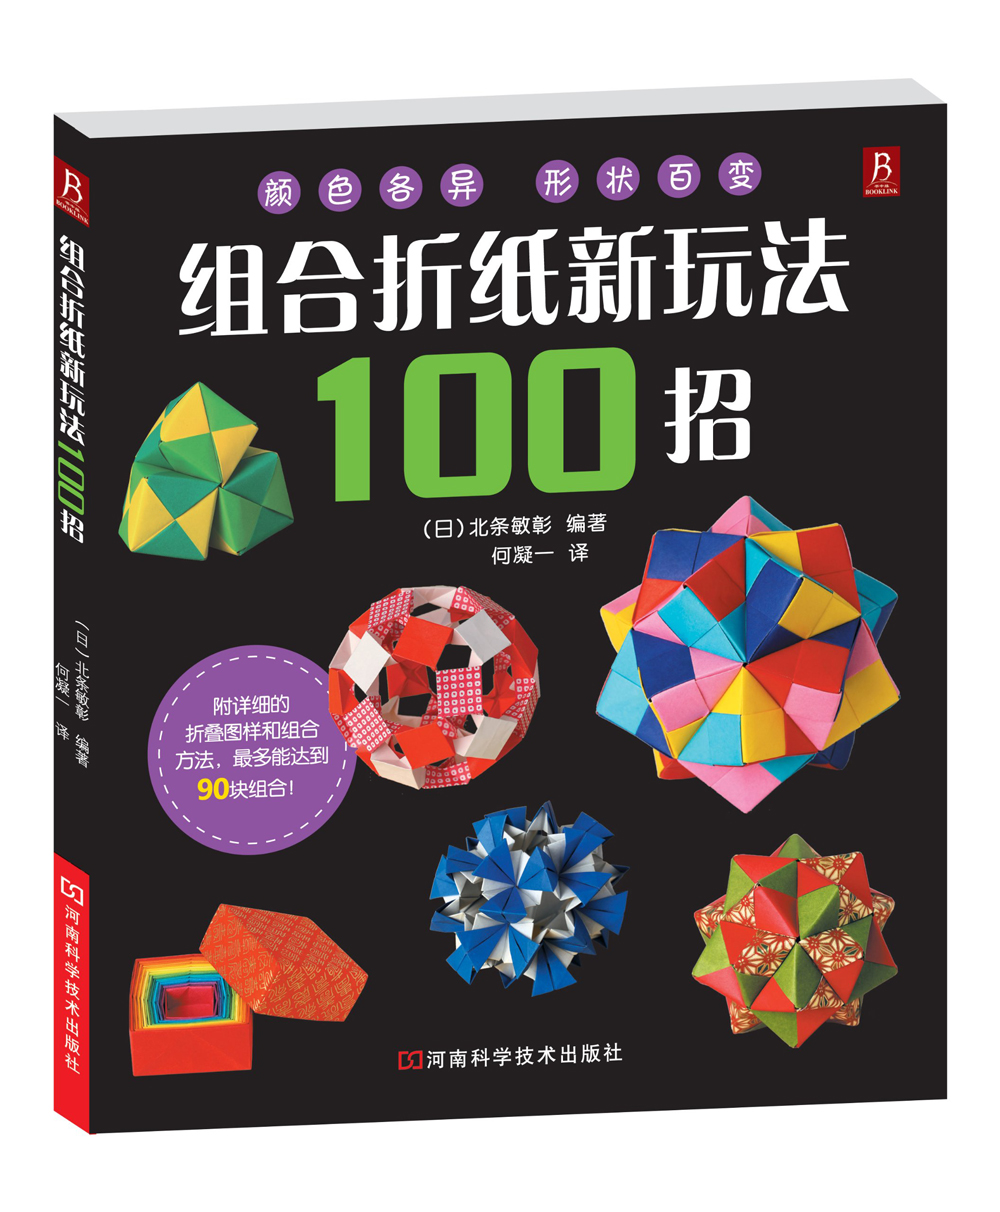 100 new ways to combine Origami / Chinese Handmade Carft Book violet ugrat ways to heaven colonization of mars i